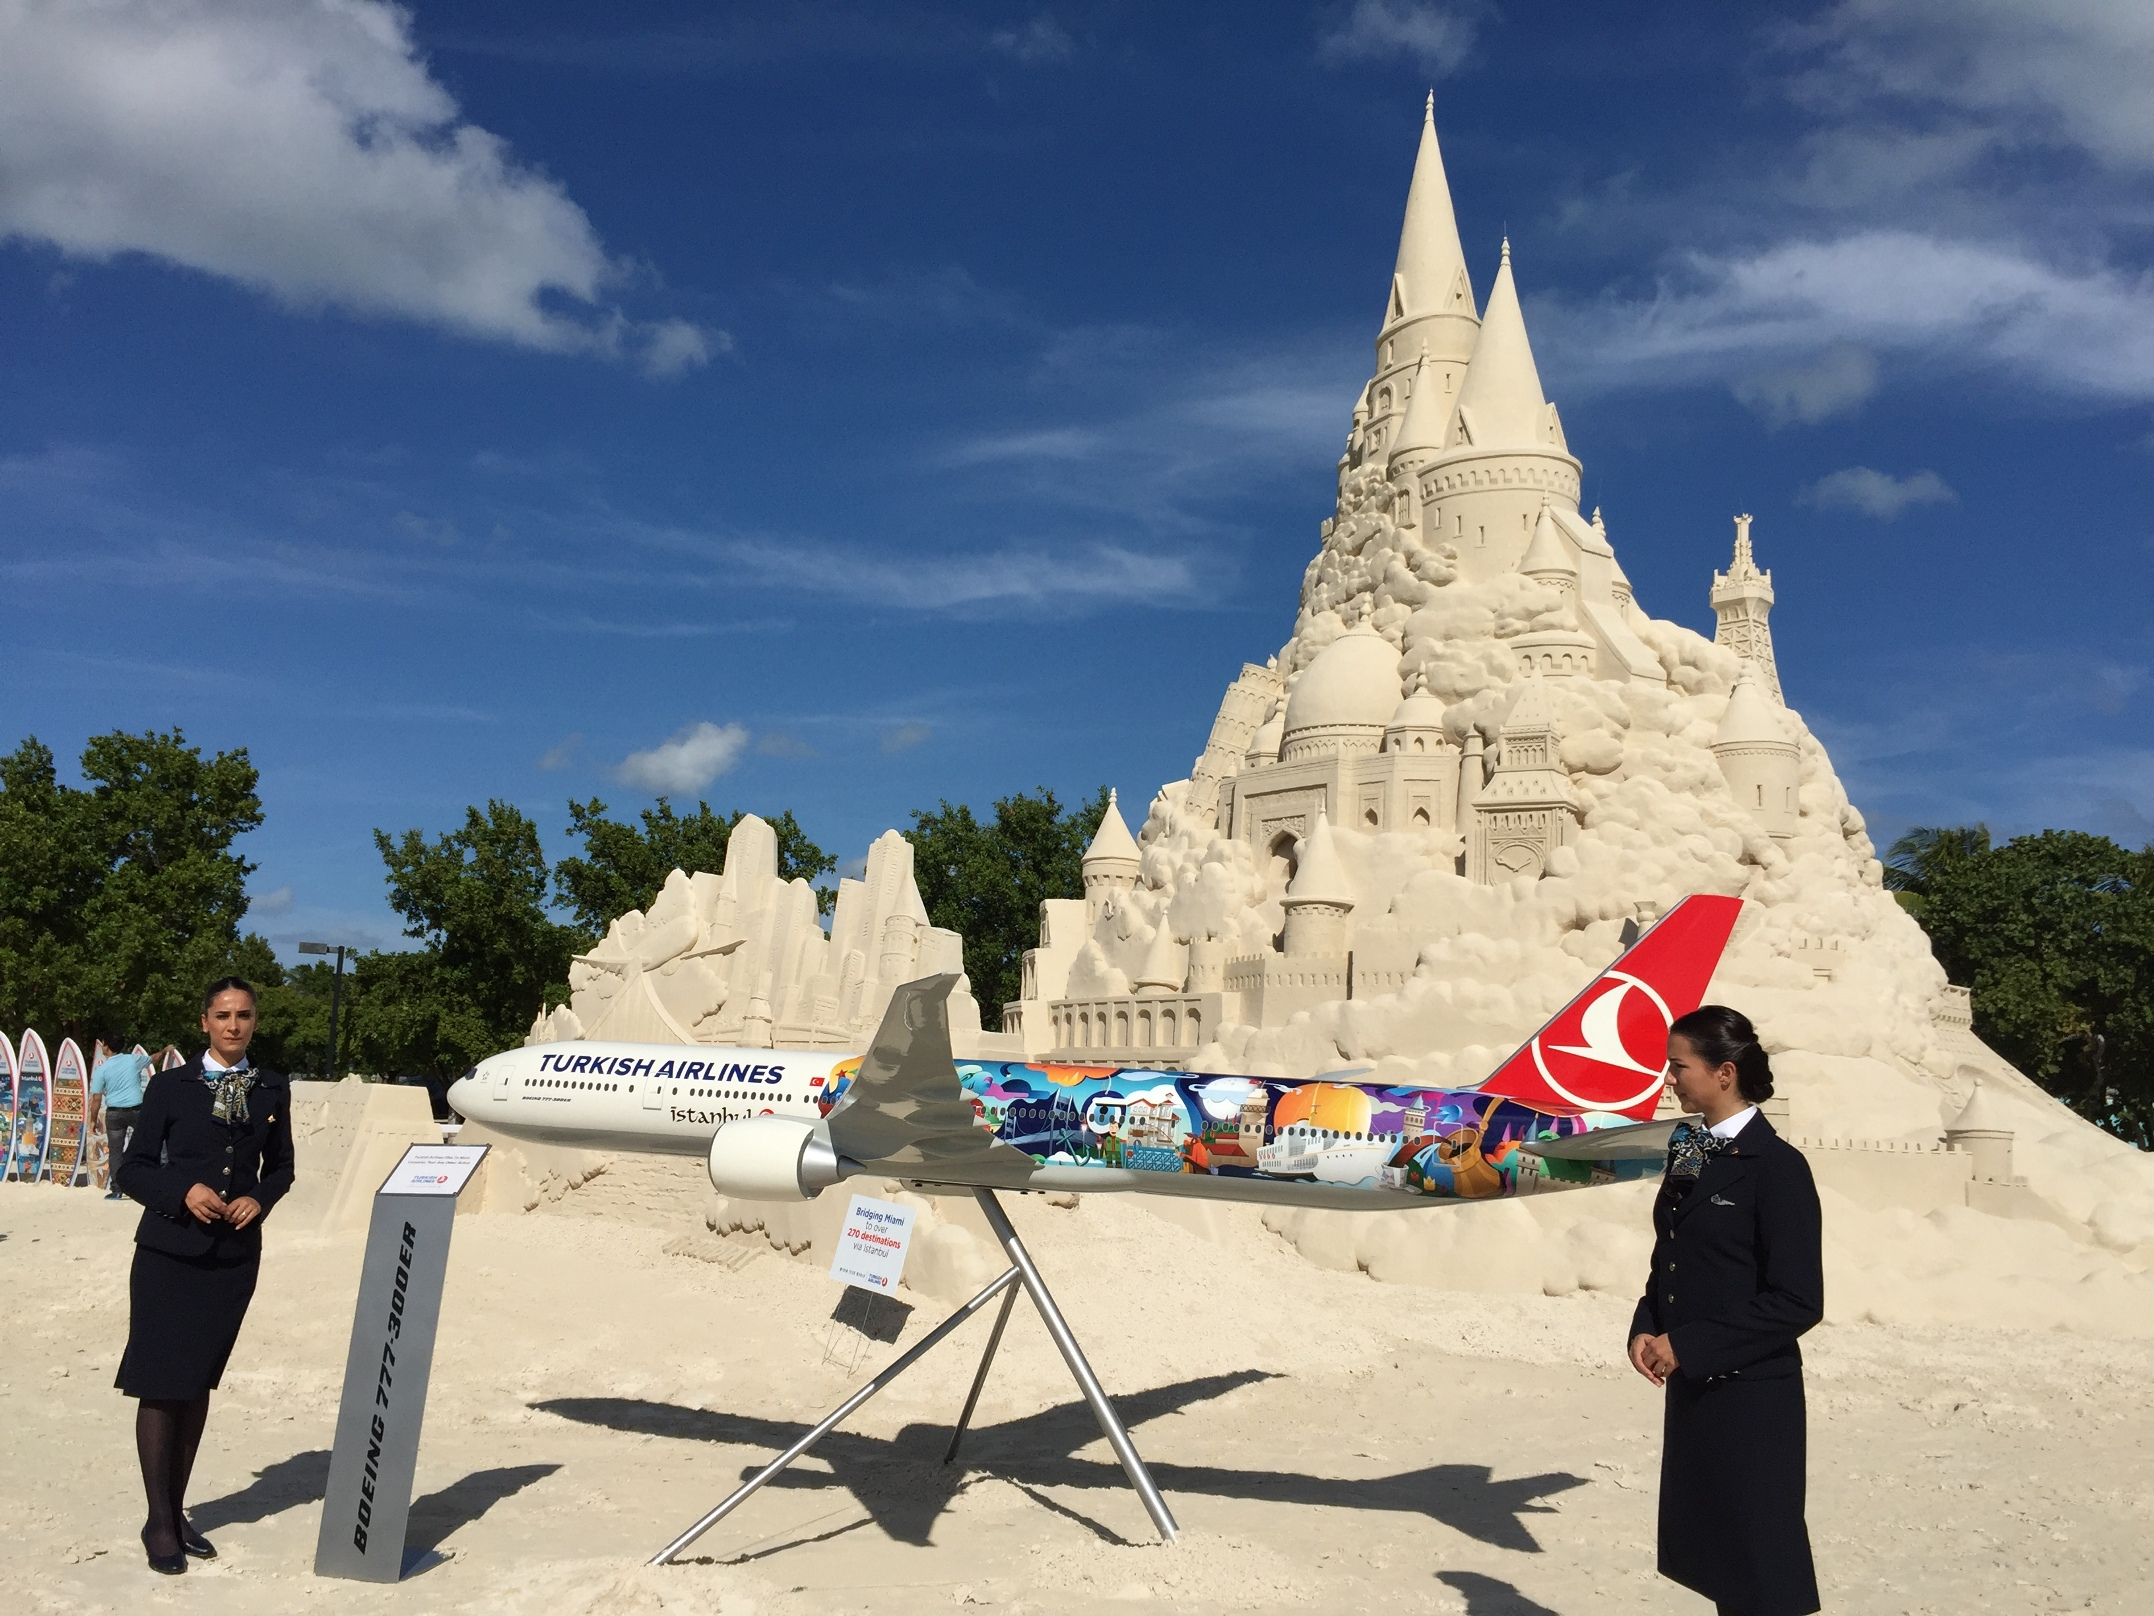 THY_Turkish Airlines_First Flight Miami_Sand Castle_Oct 2015_002